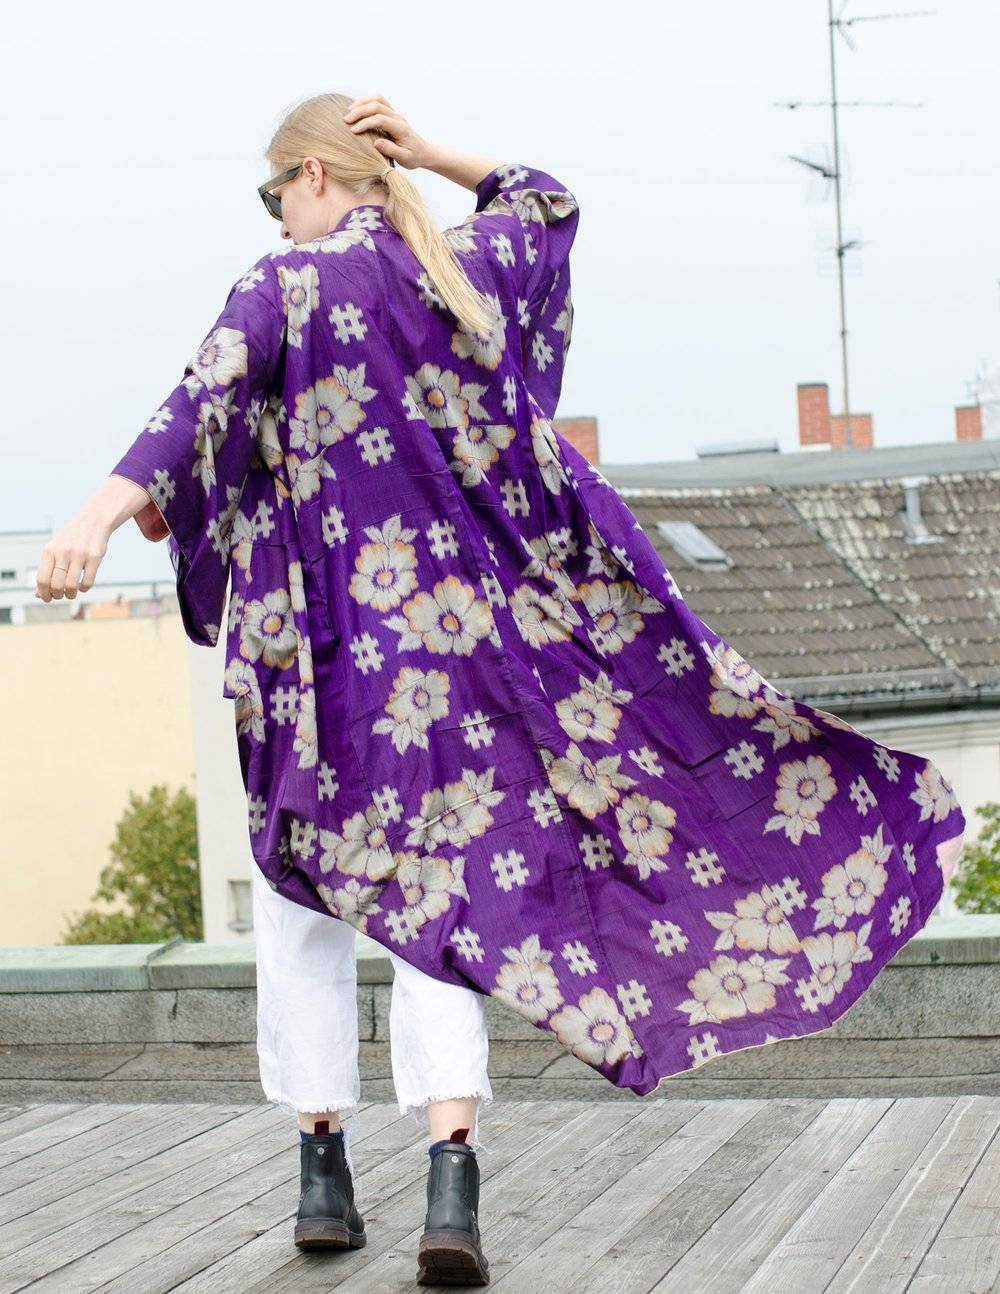 dancing with joy in purple vintage meisen kimono